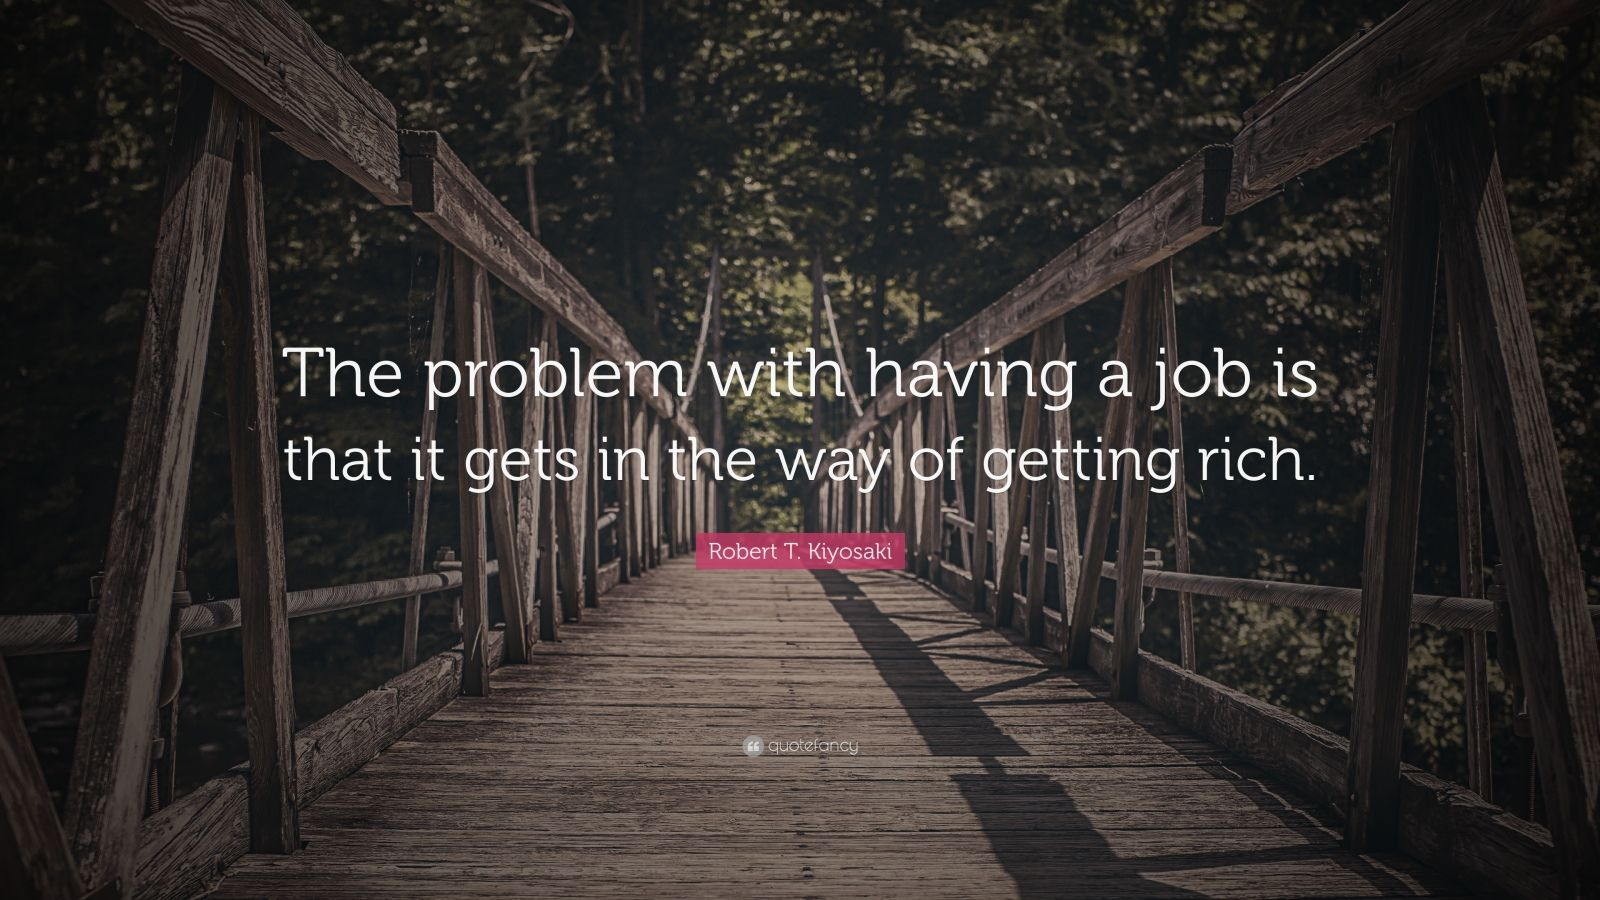 """Robert T. Kiyosaki Quote: """"The problem with having a job is that it gets in the way of getting rich."""""""